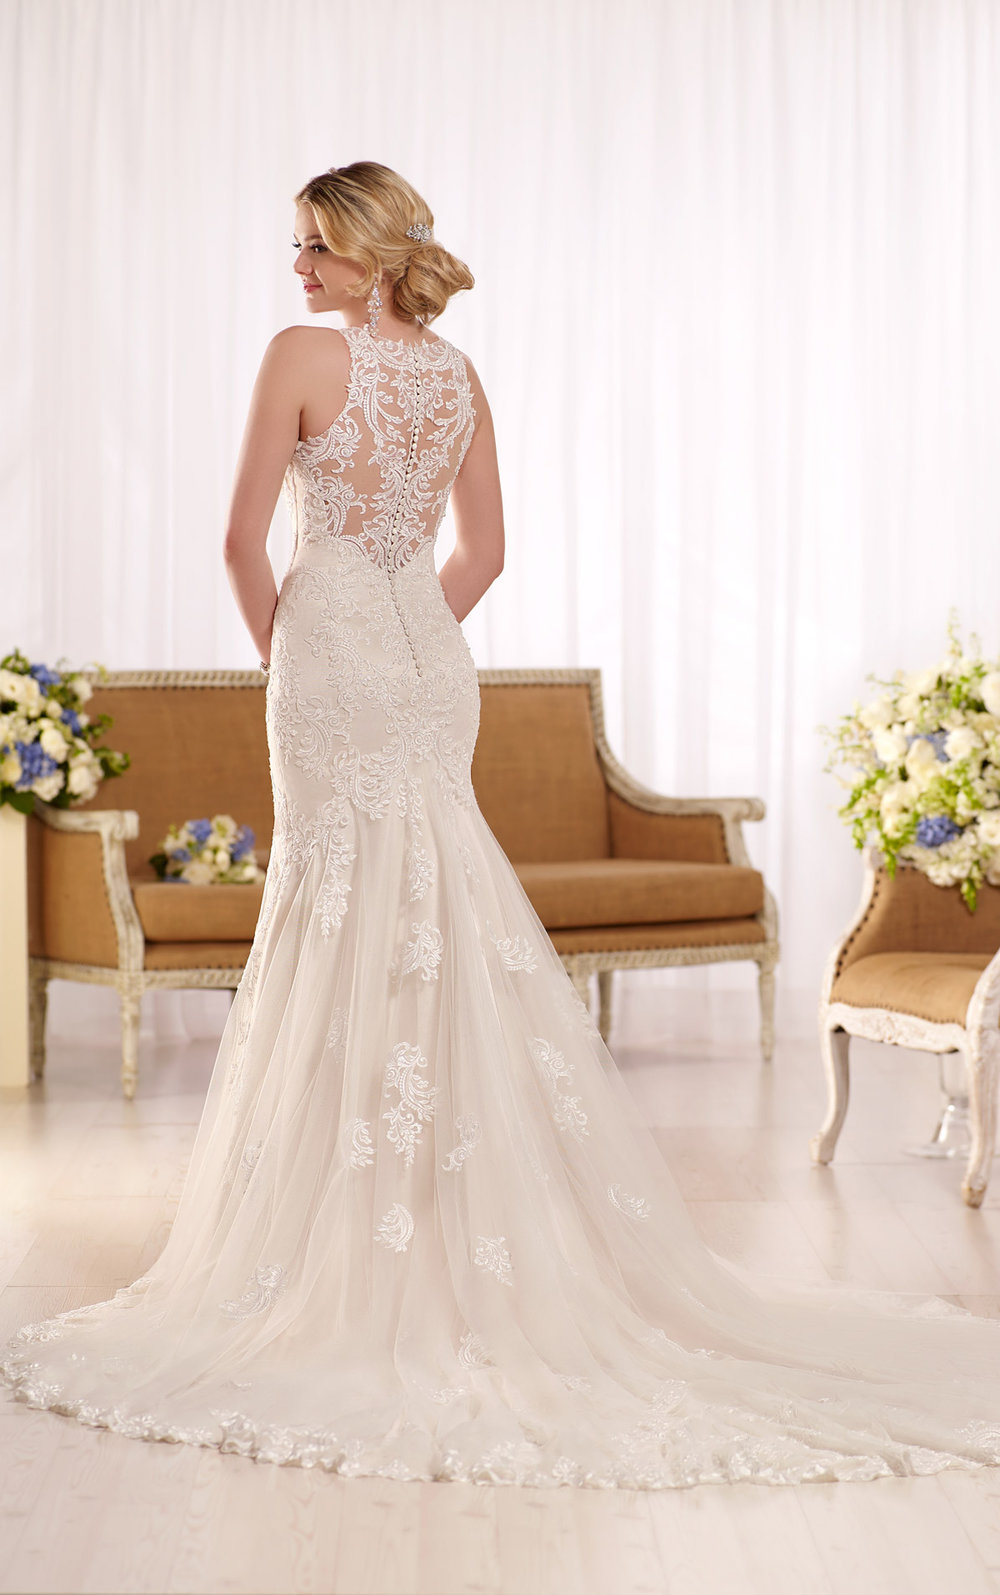 Halter neckline and illusion lace back wedding dress